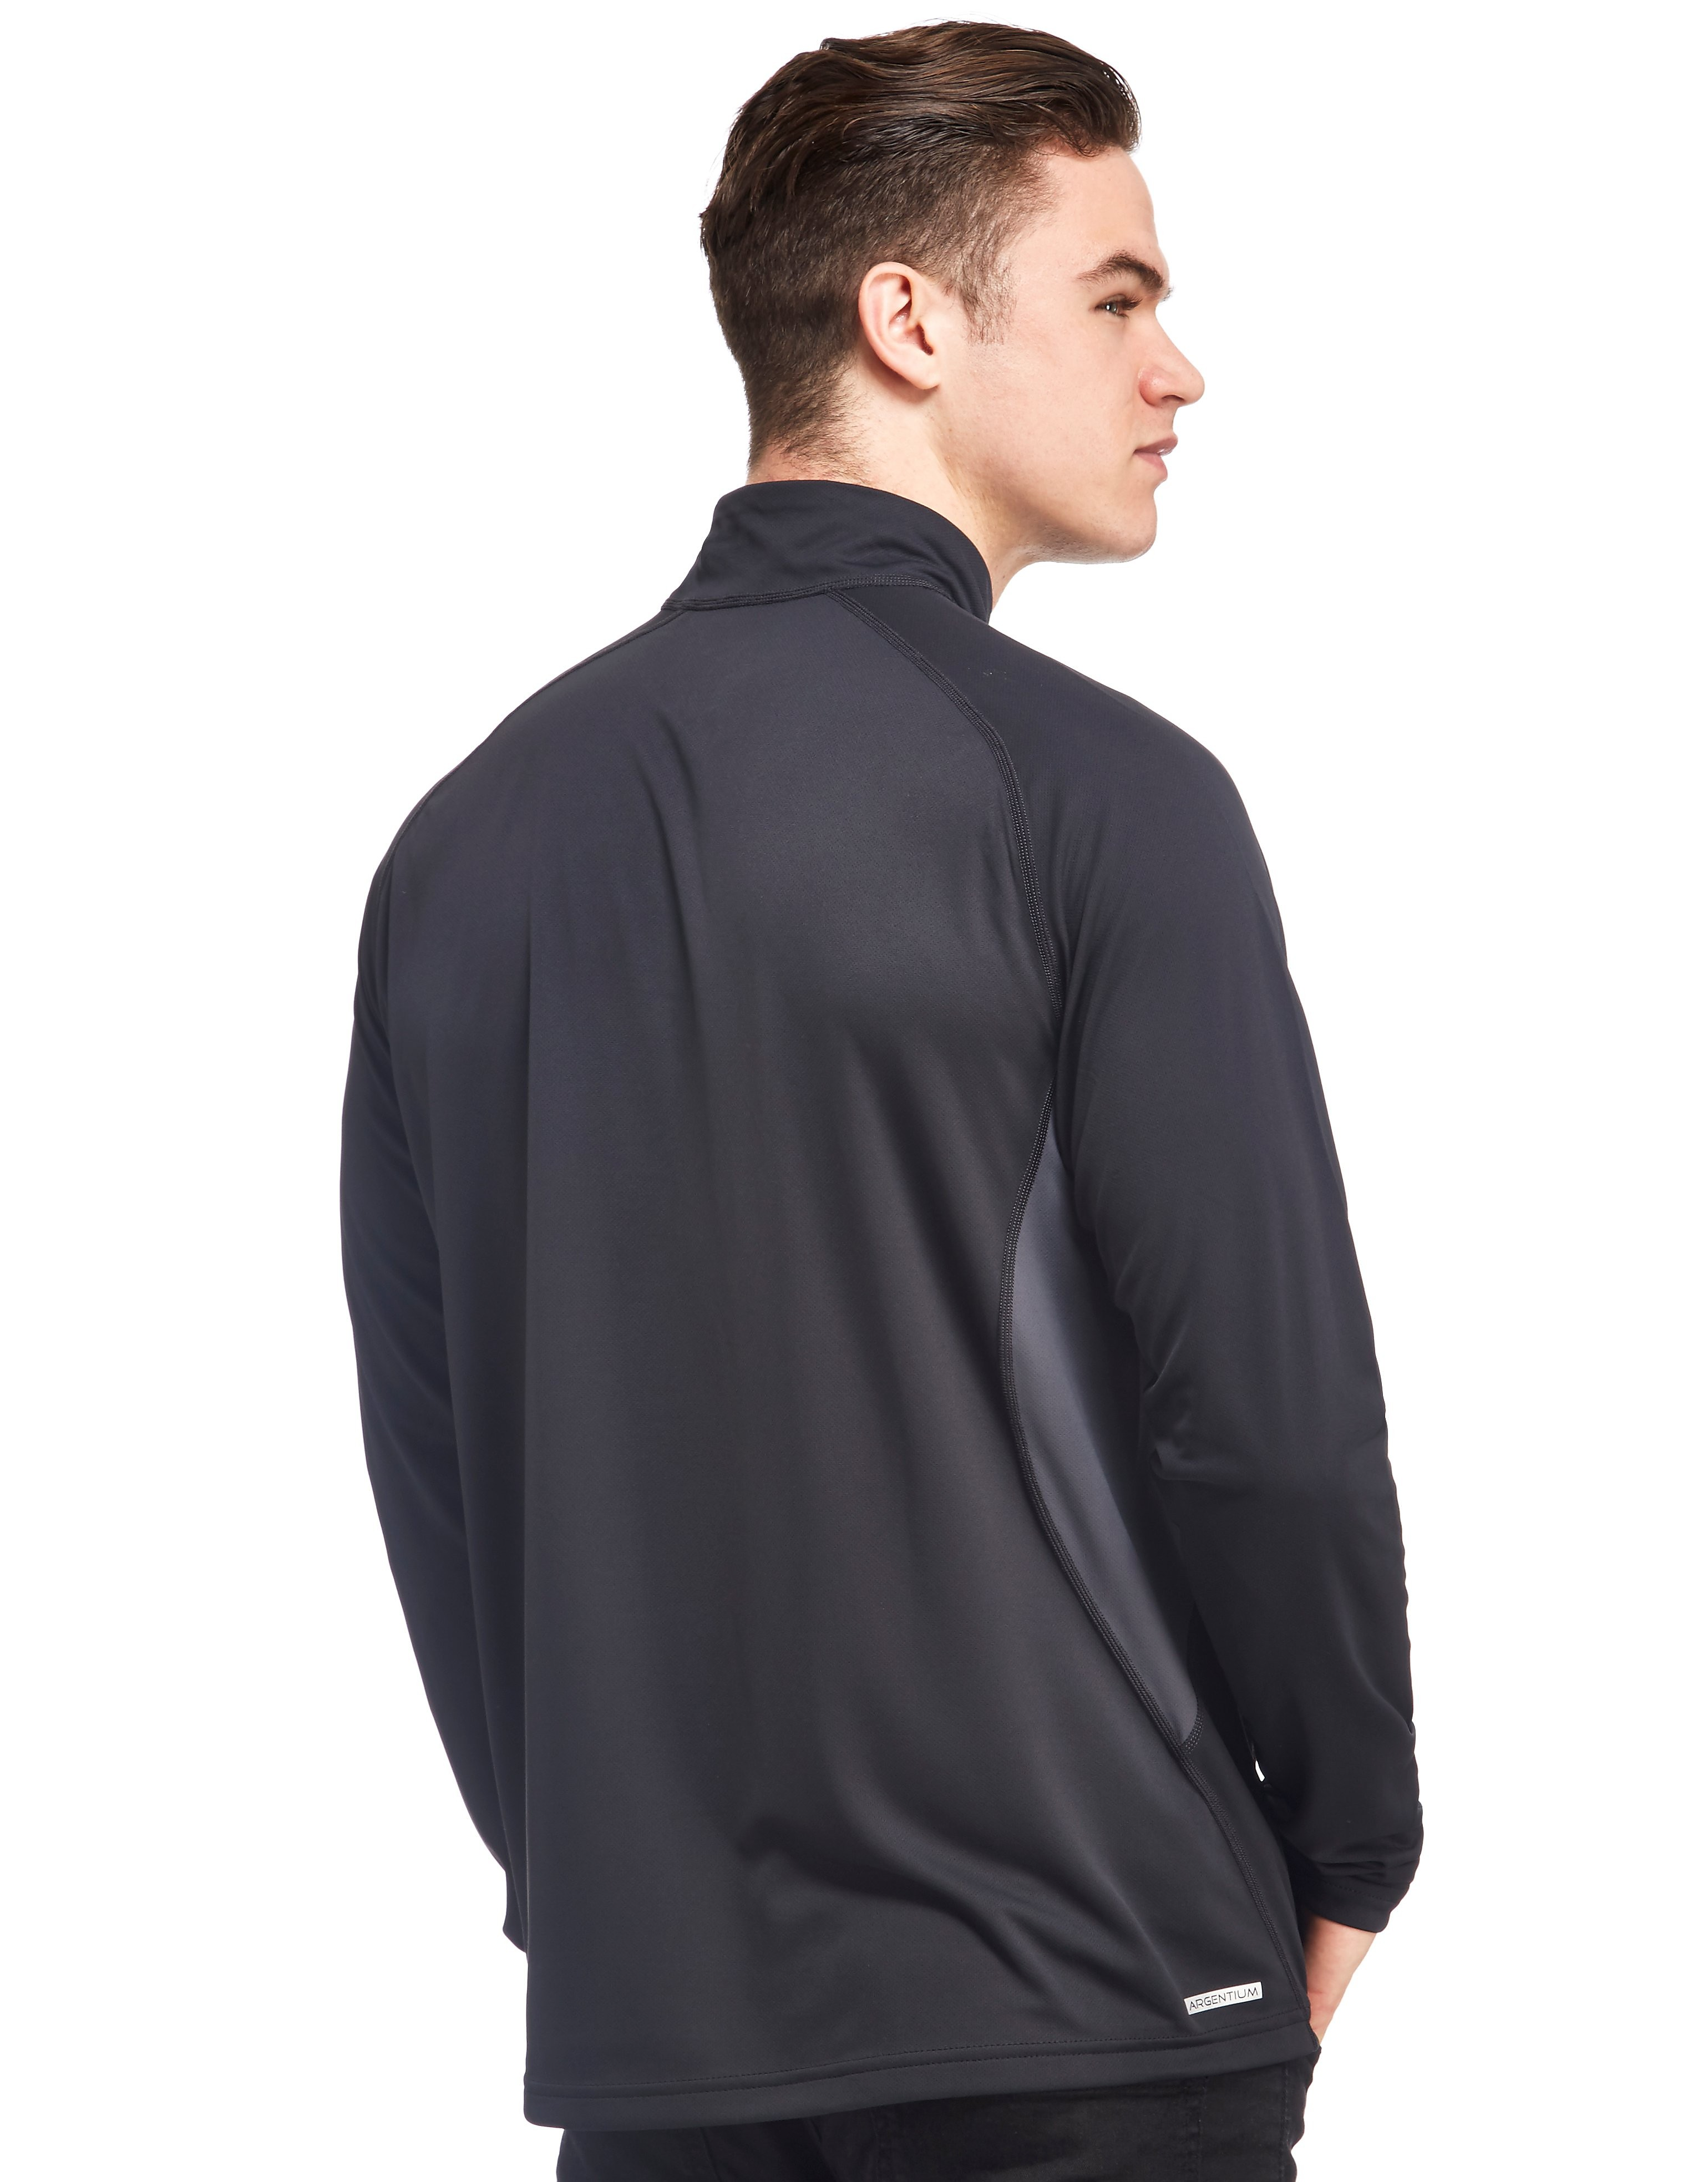 Berghaus Tech Tee Longsleeve Zip Top